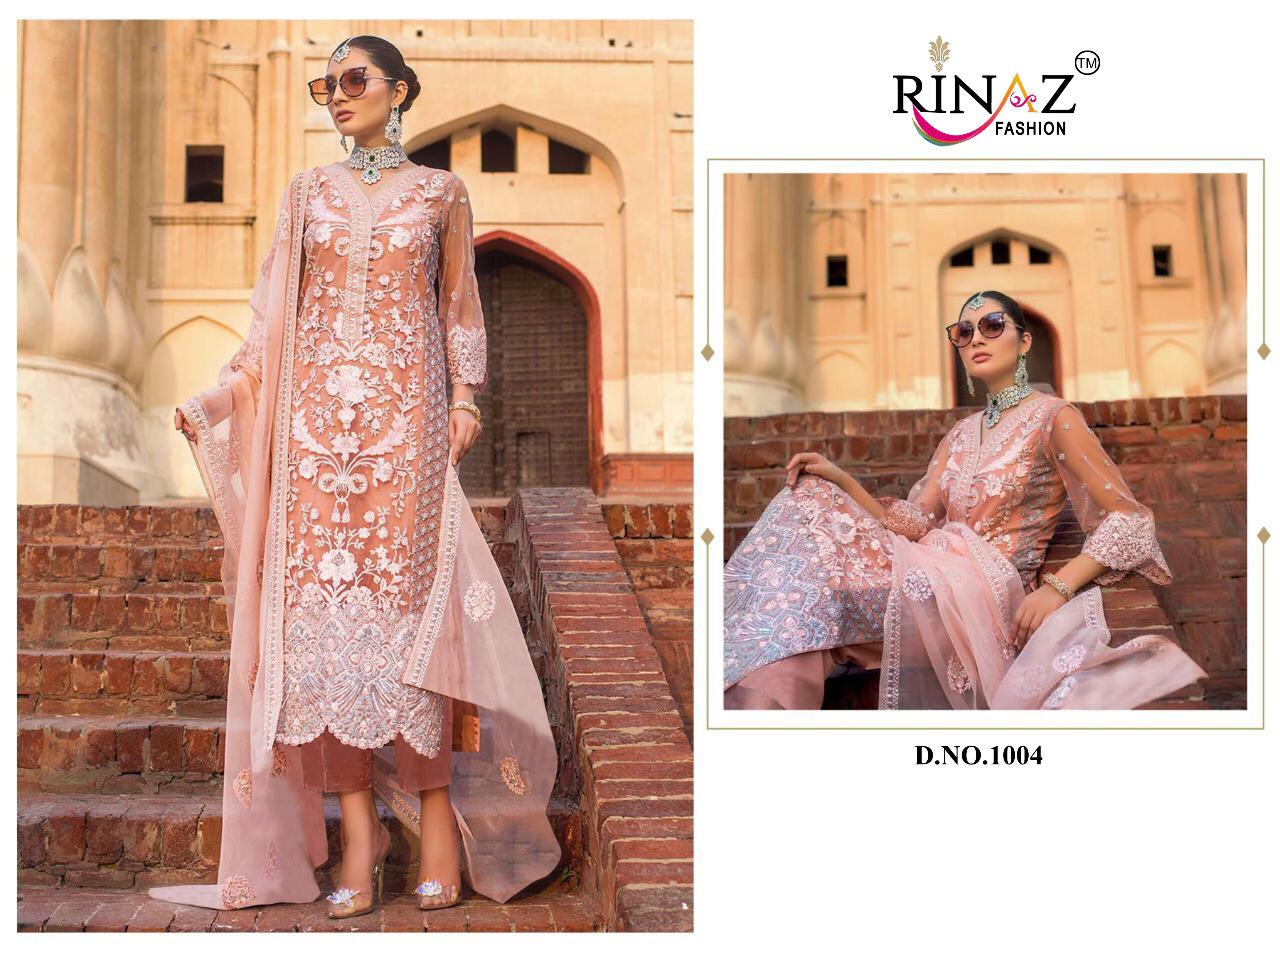 Rinaz Fashion Designer Pakistani Salwar Kameez By Rinaz Fashion Ashdesigners In